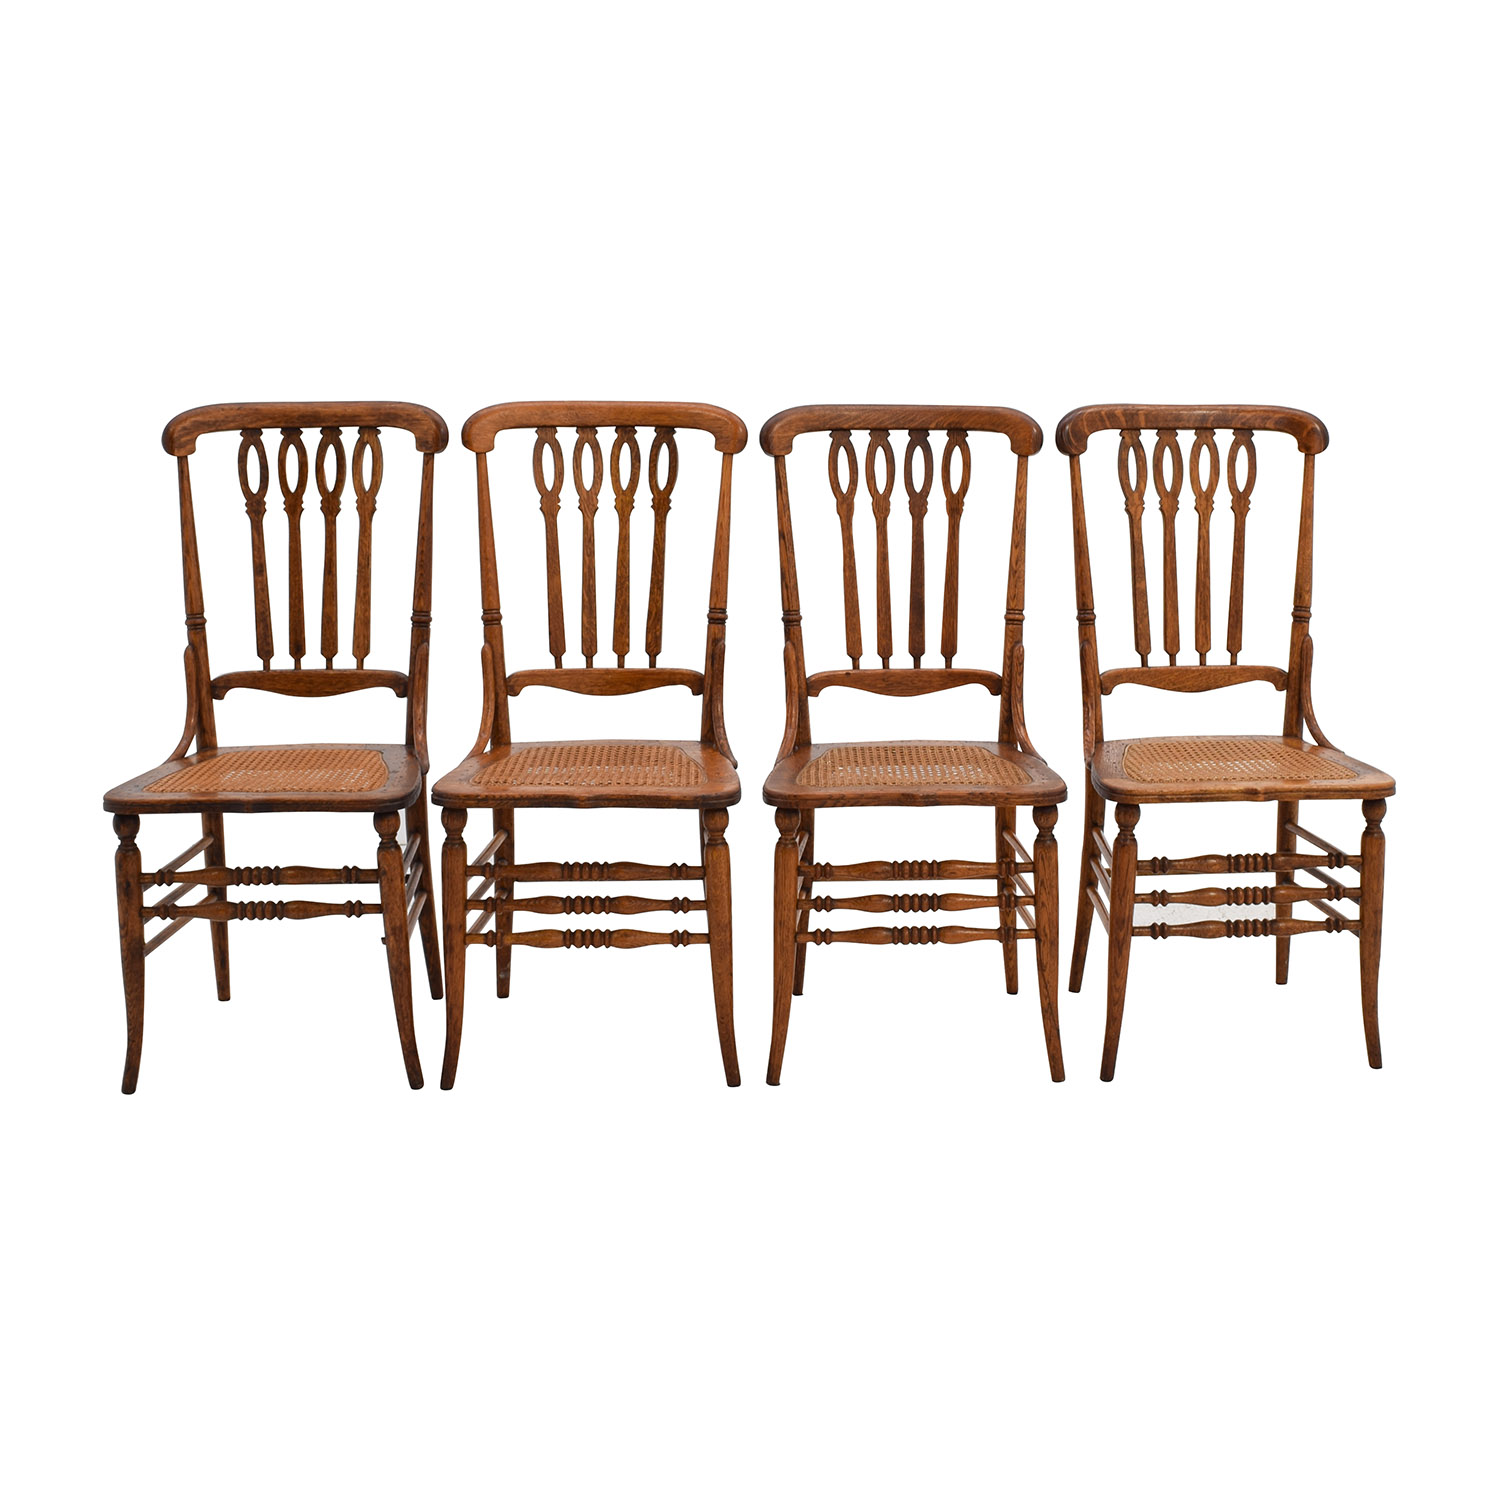 Antique Cane Weaved Wood Dining Chairs for sale